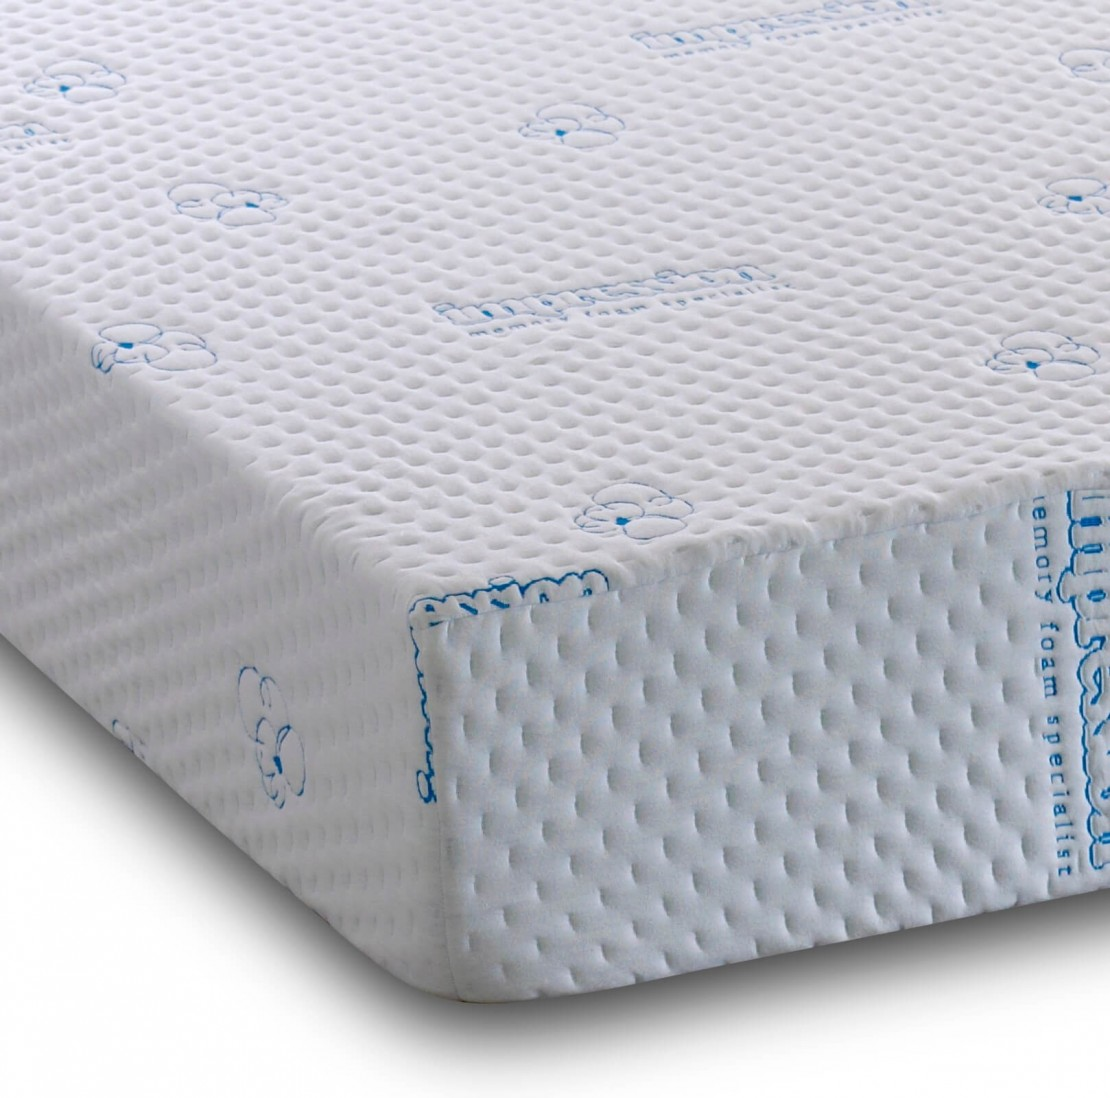 /_images/product-photos/visco-therapy-visco-3000-hd-memory-foam-regular-mattress-a.jpg